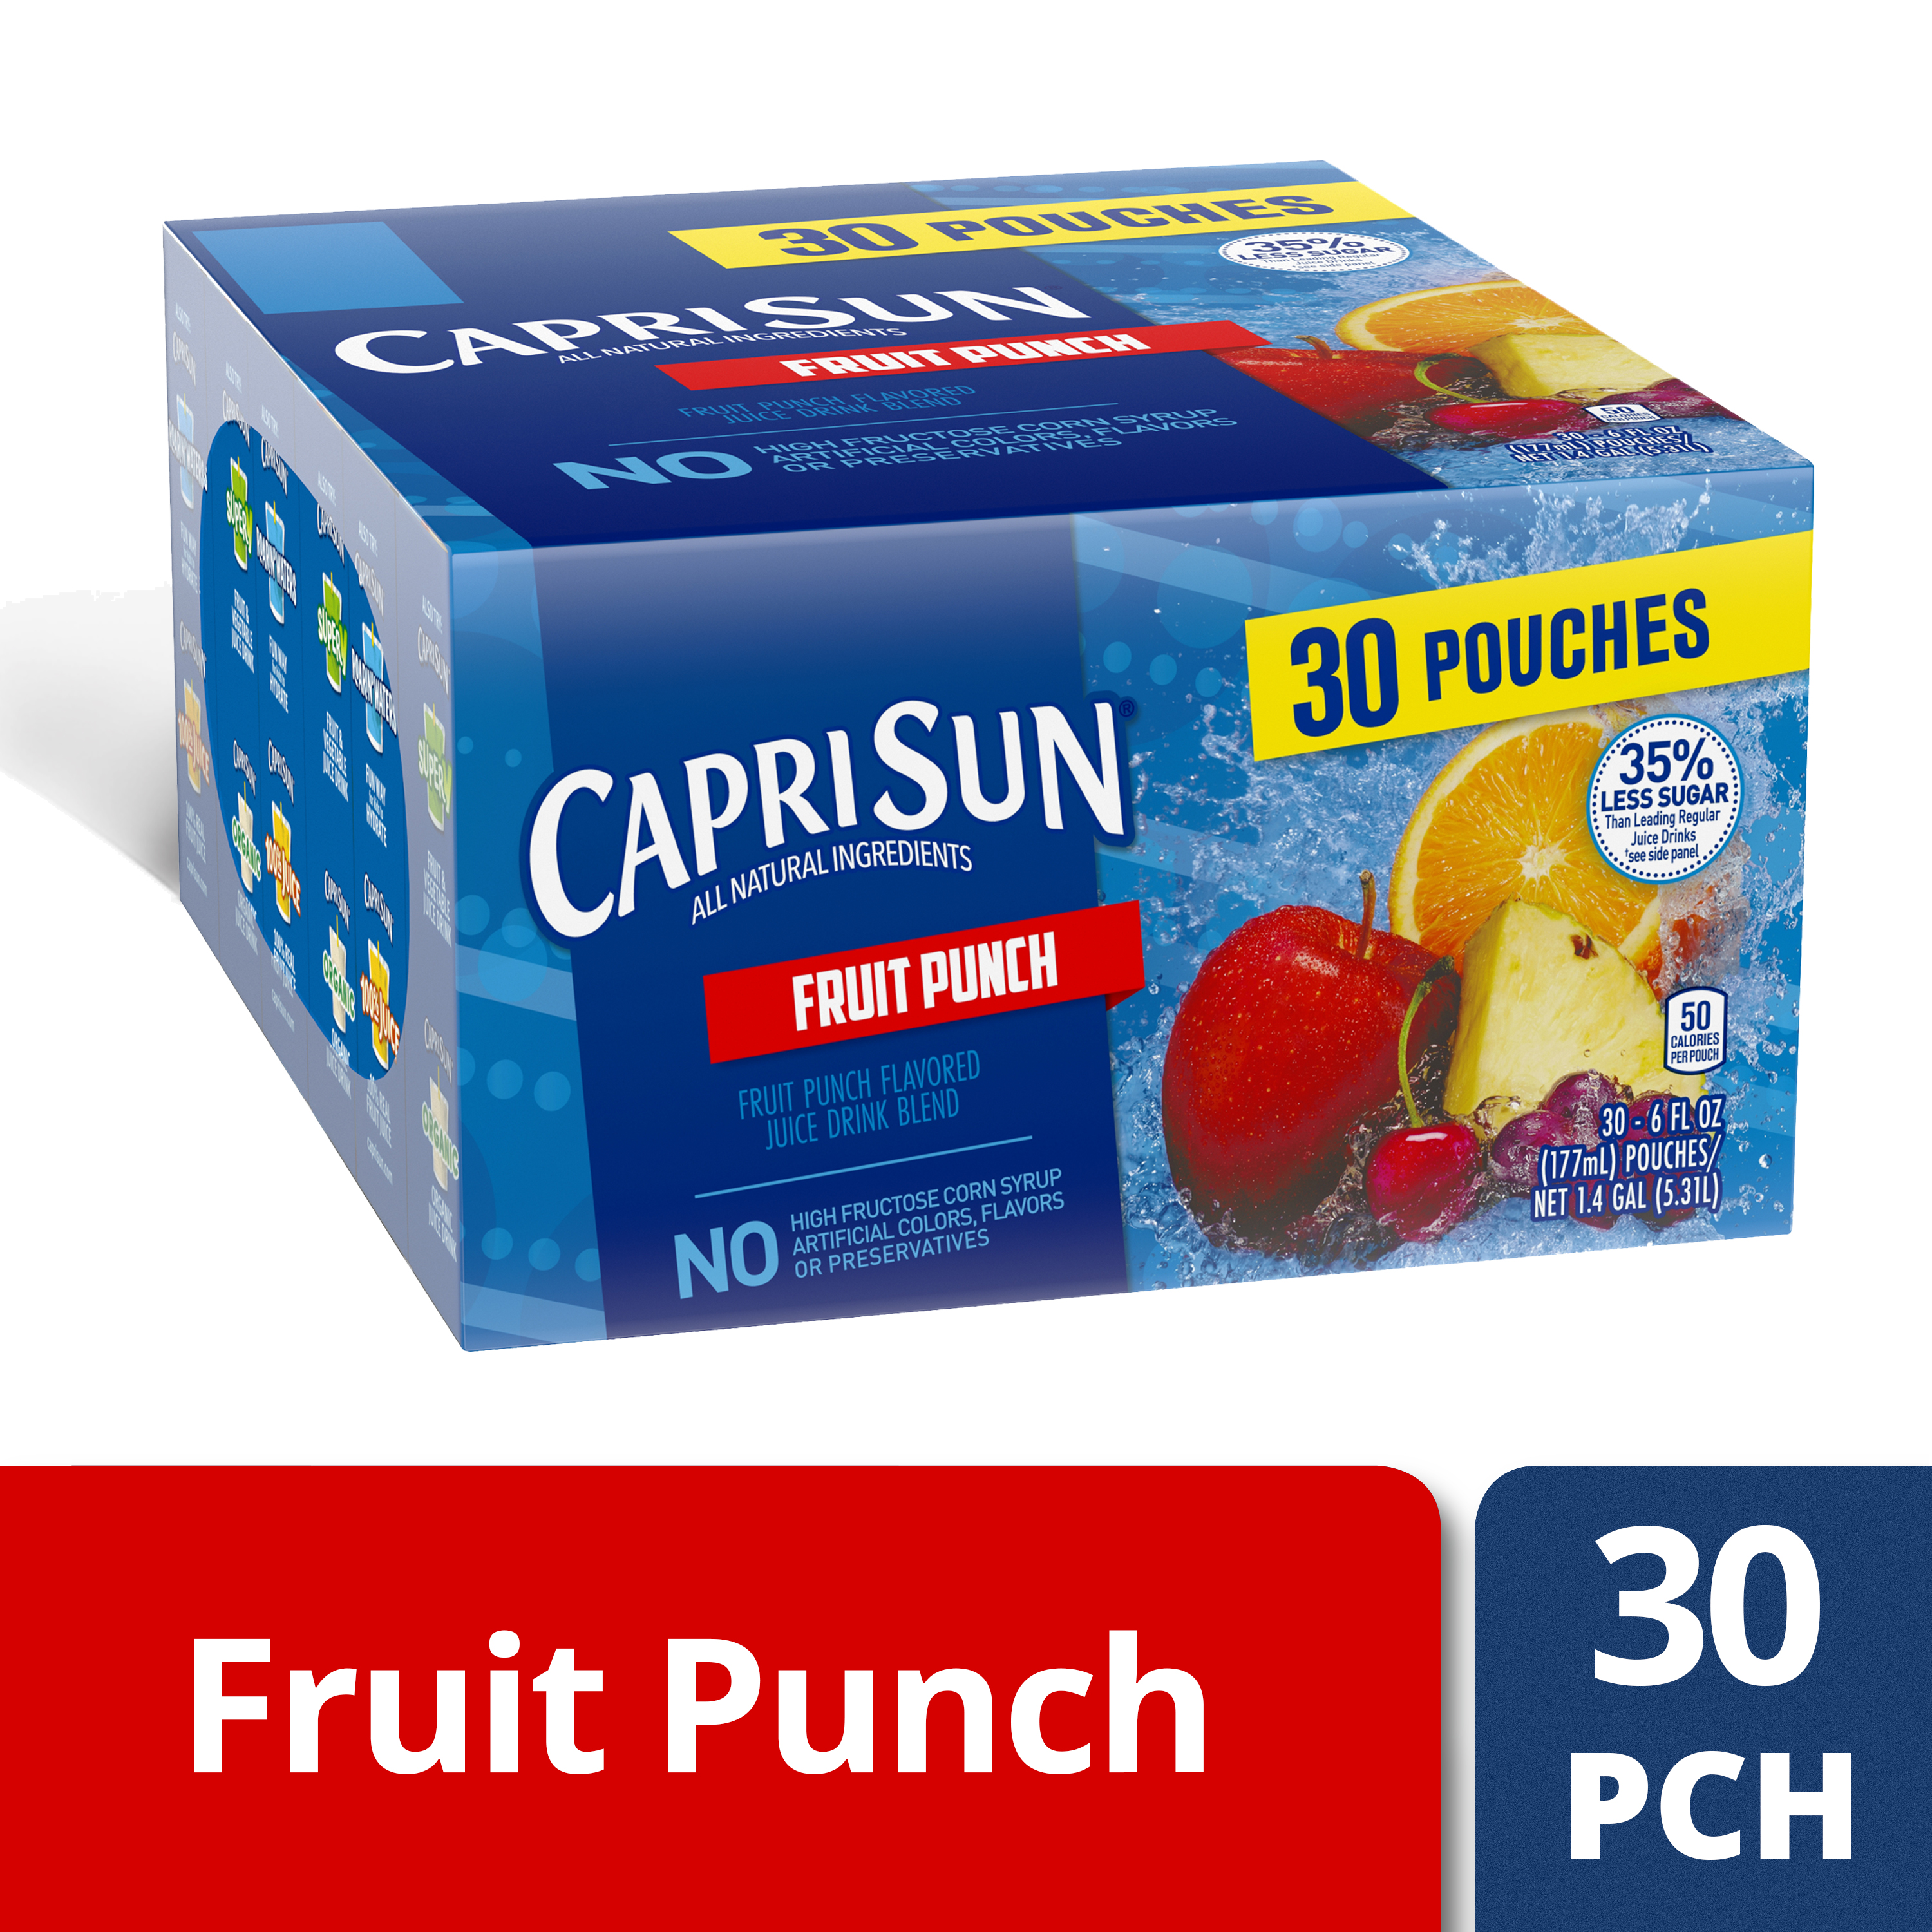 Capri Sun 35% Less Sugar Fruit Punch Flavored Juice Drink Blend (30-6 fl oz Pouches)